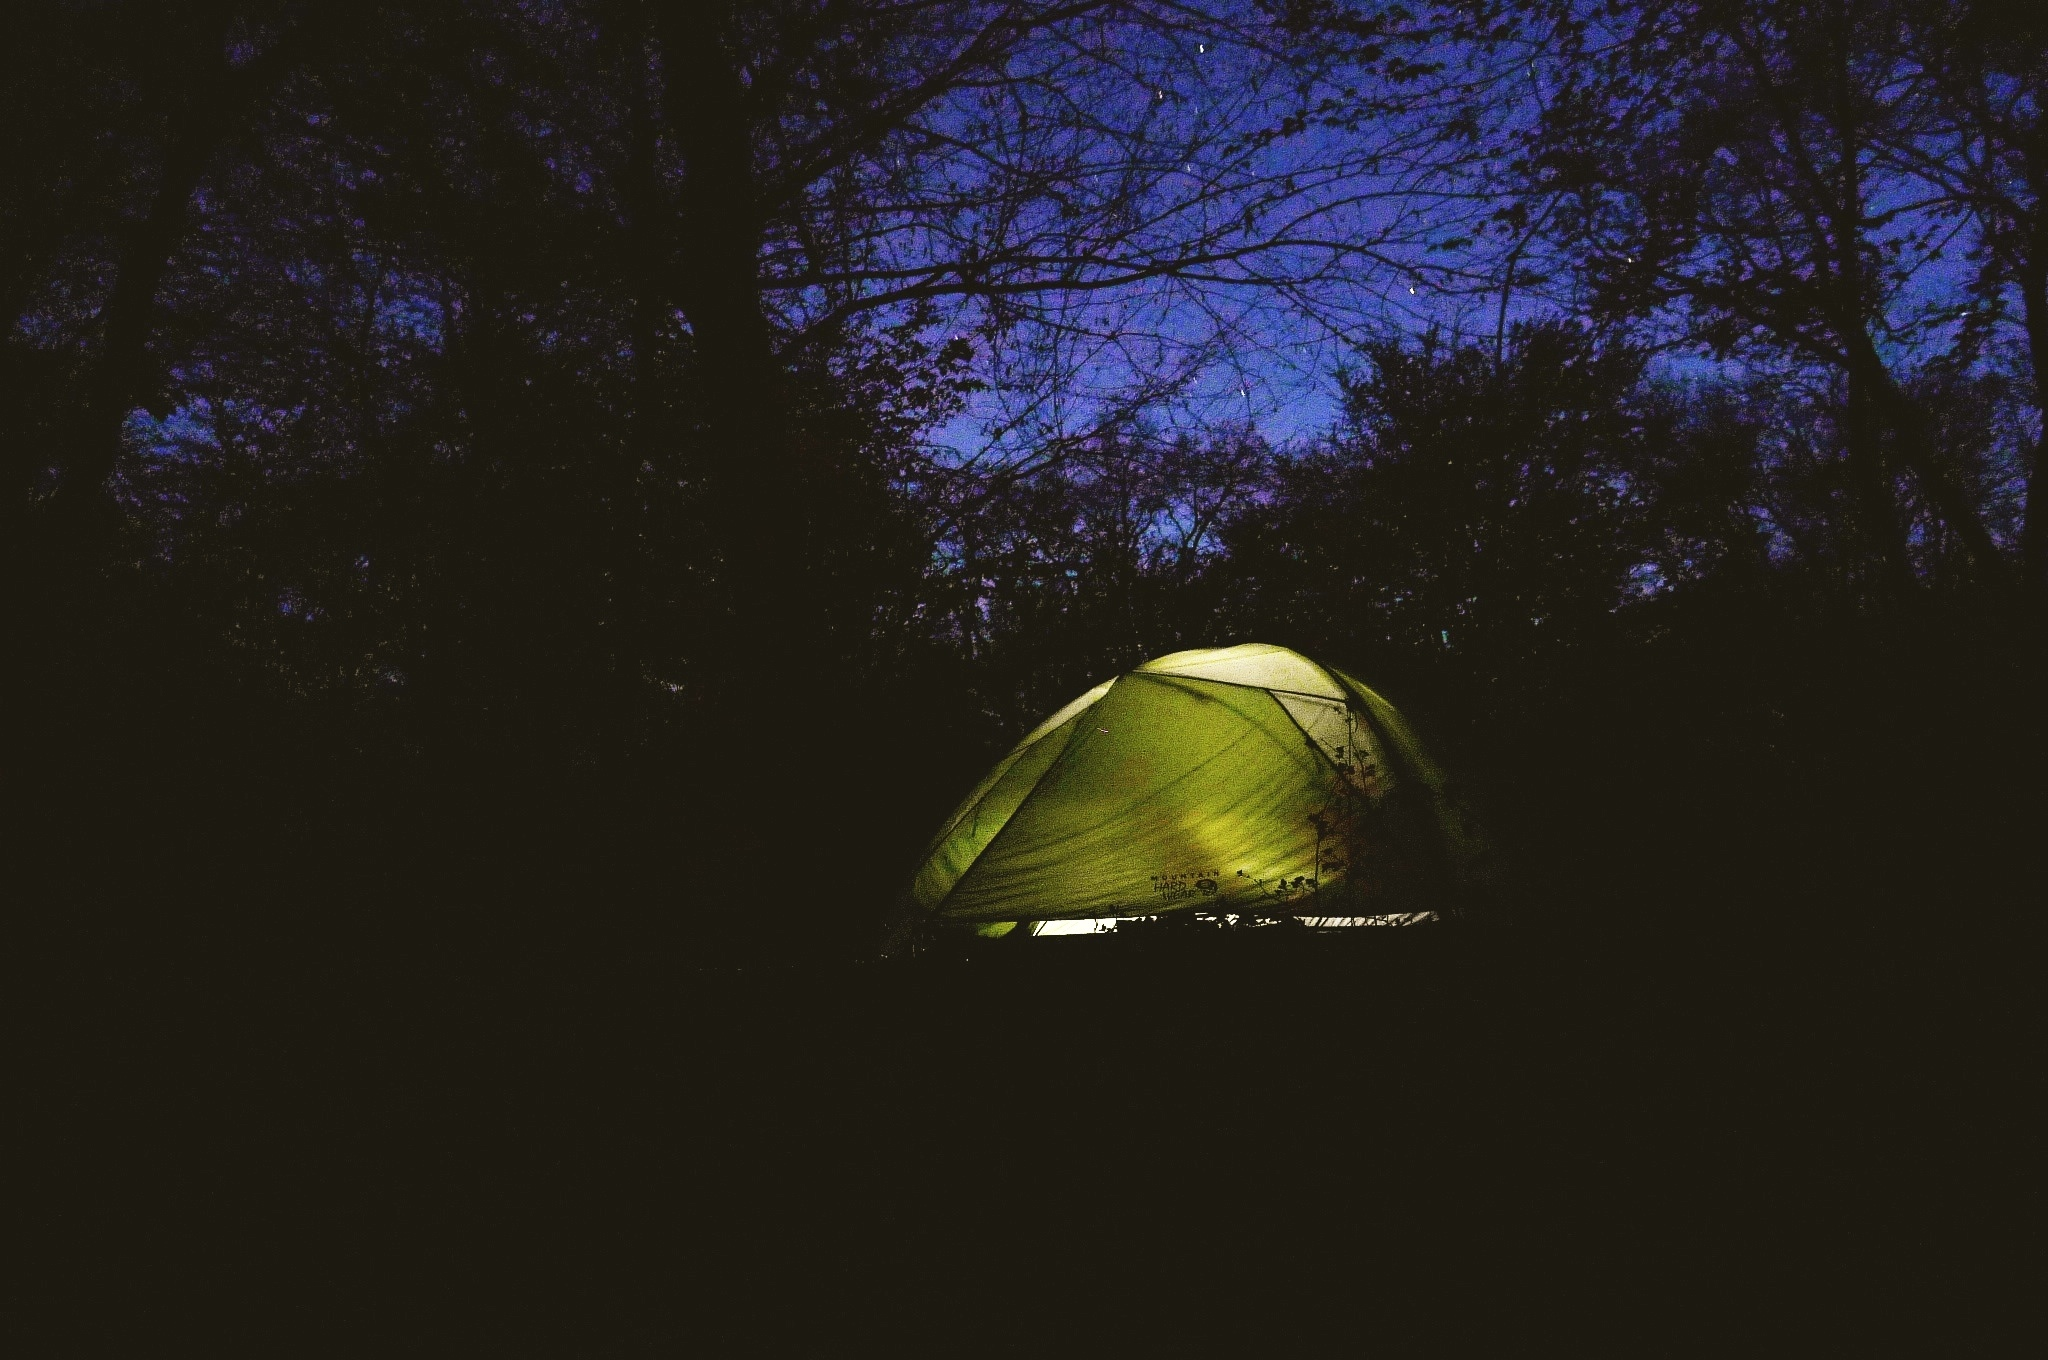 In our Mountain hardwear skyledge 3 tent, camping at night in Azerbaijan